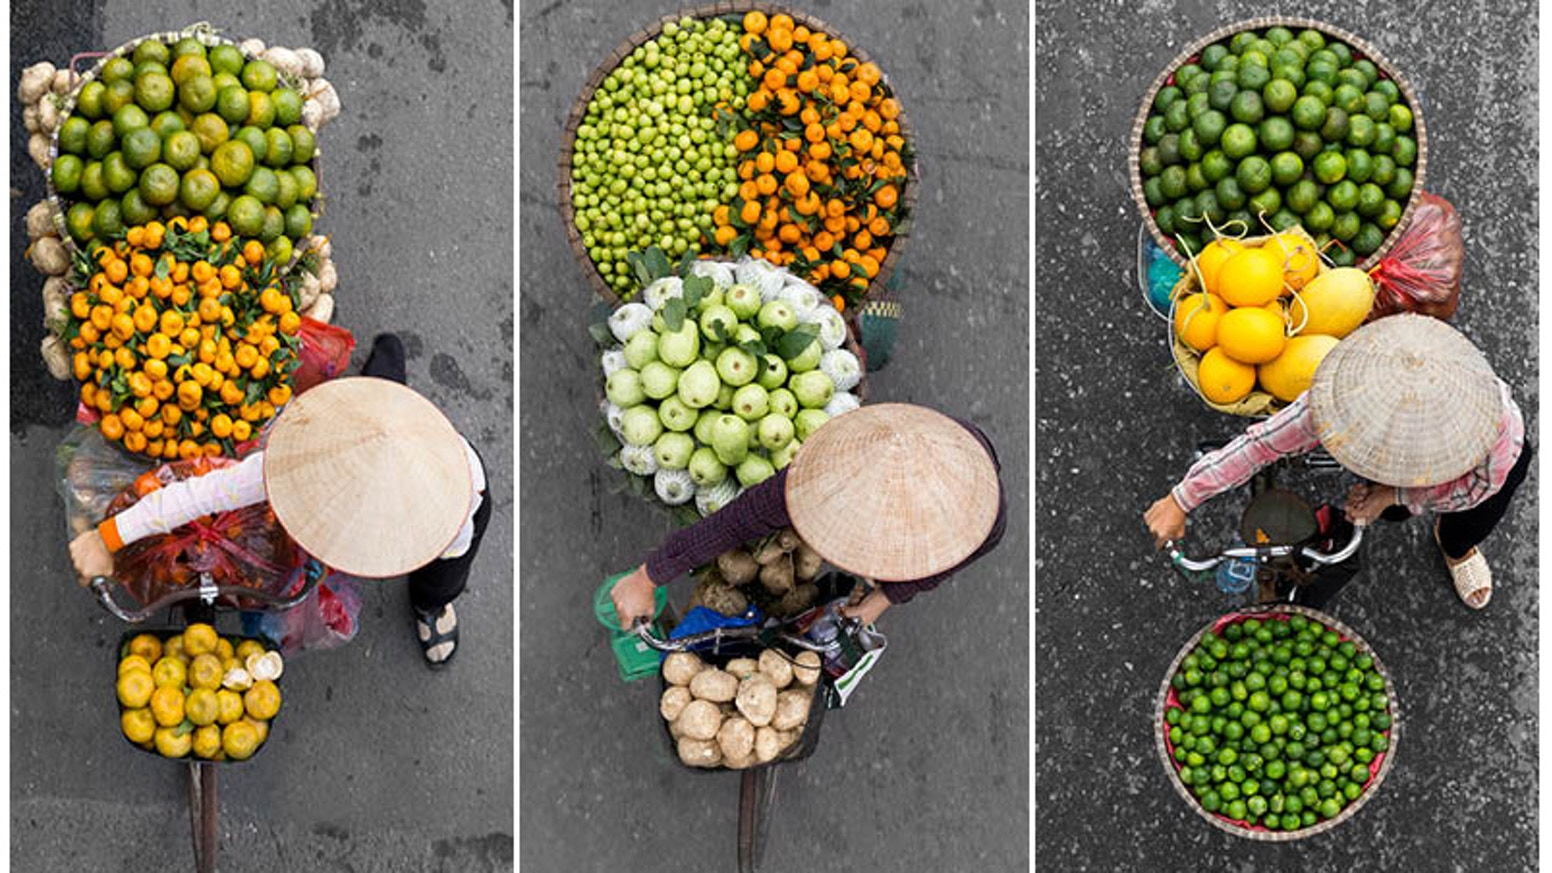 A photography book filled with amazing pictures showcasing the diversity in colors and the life of street vendors in Hanoi.